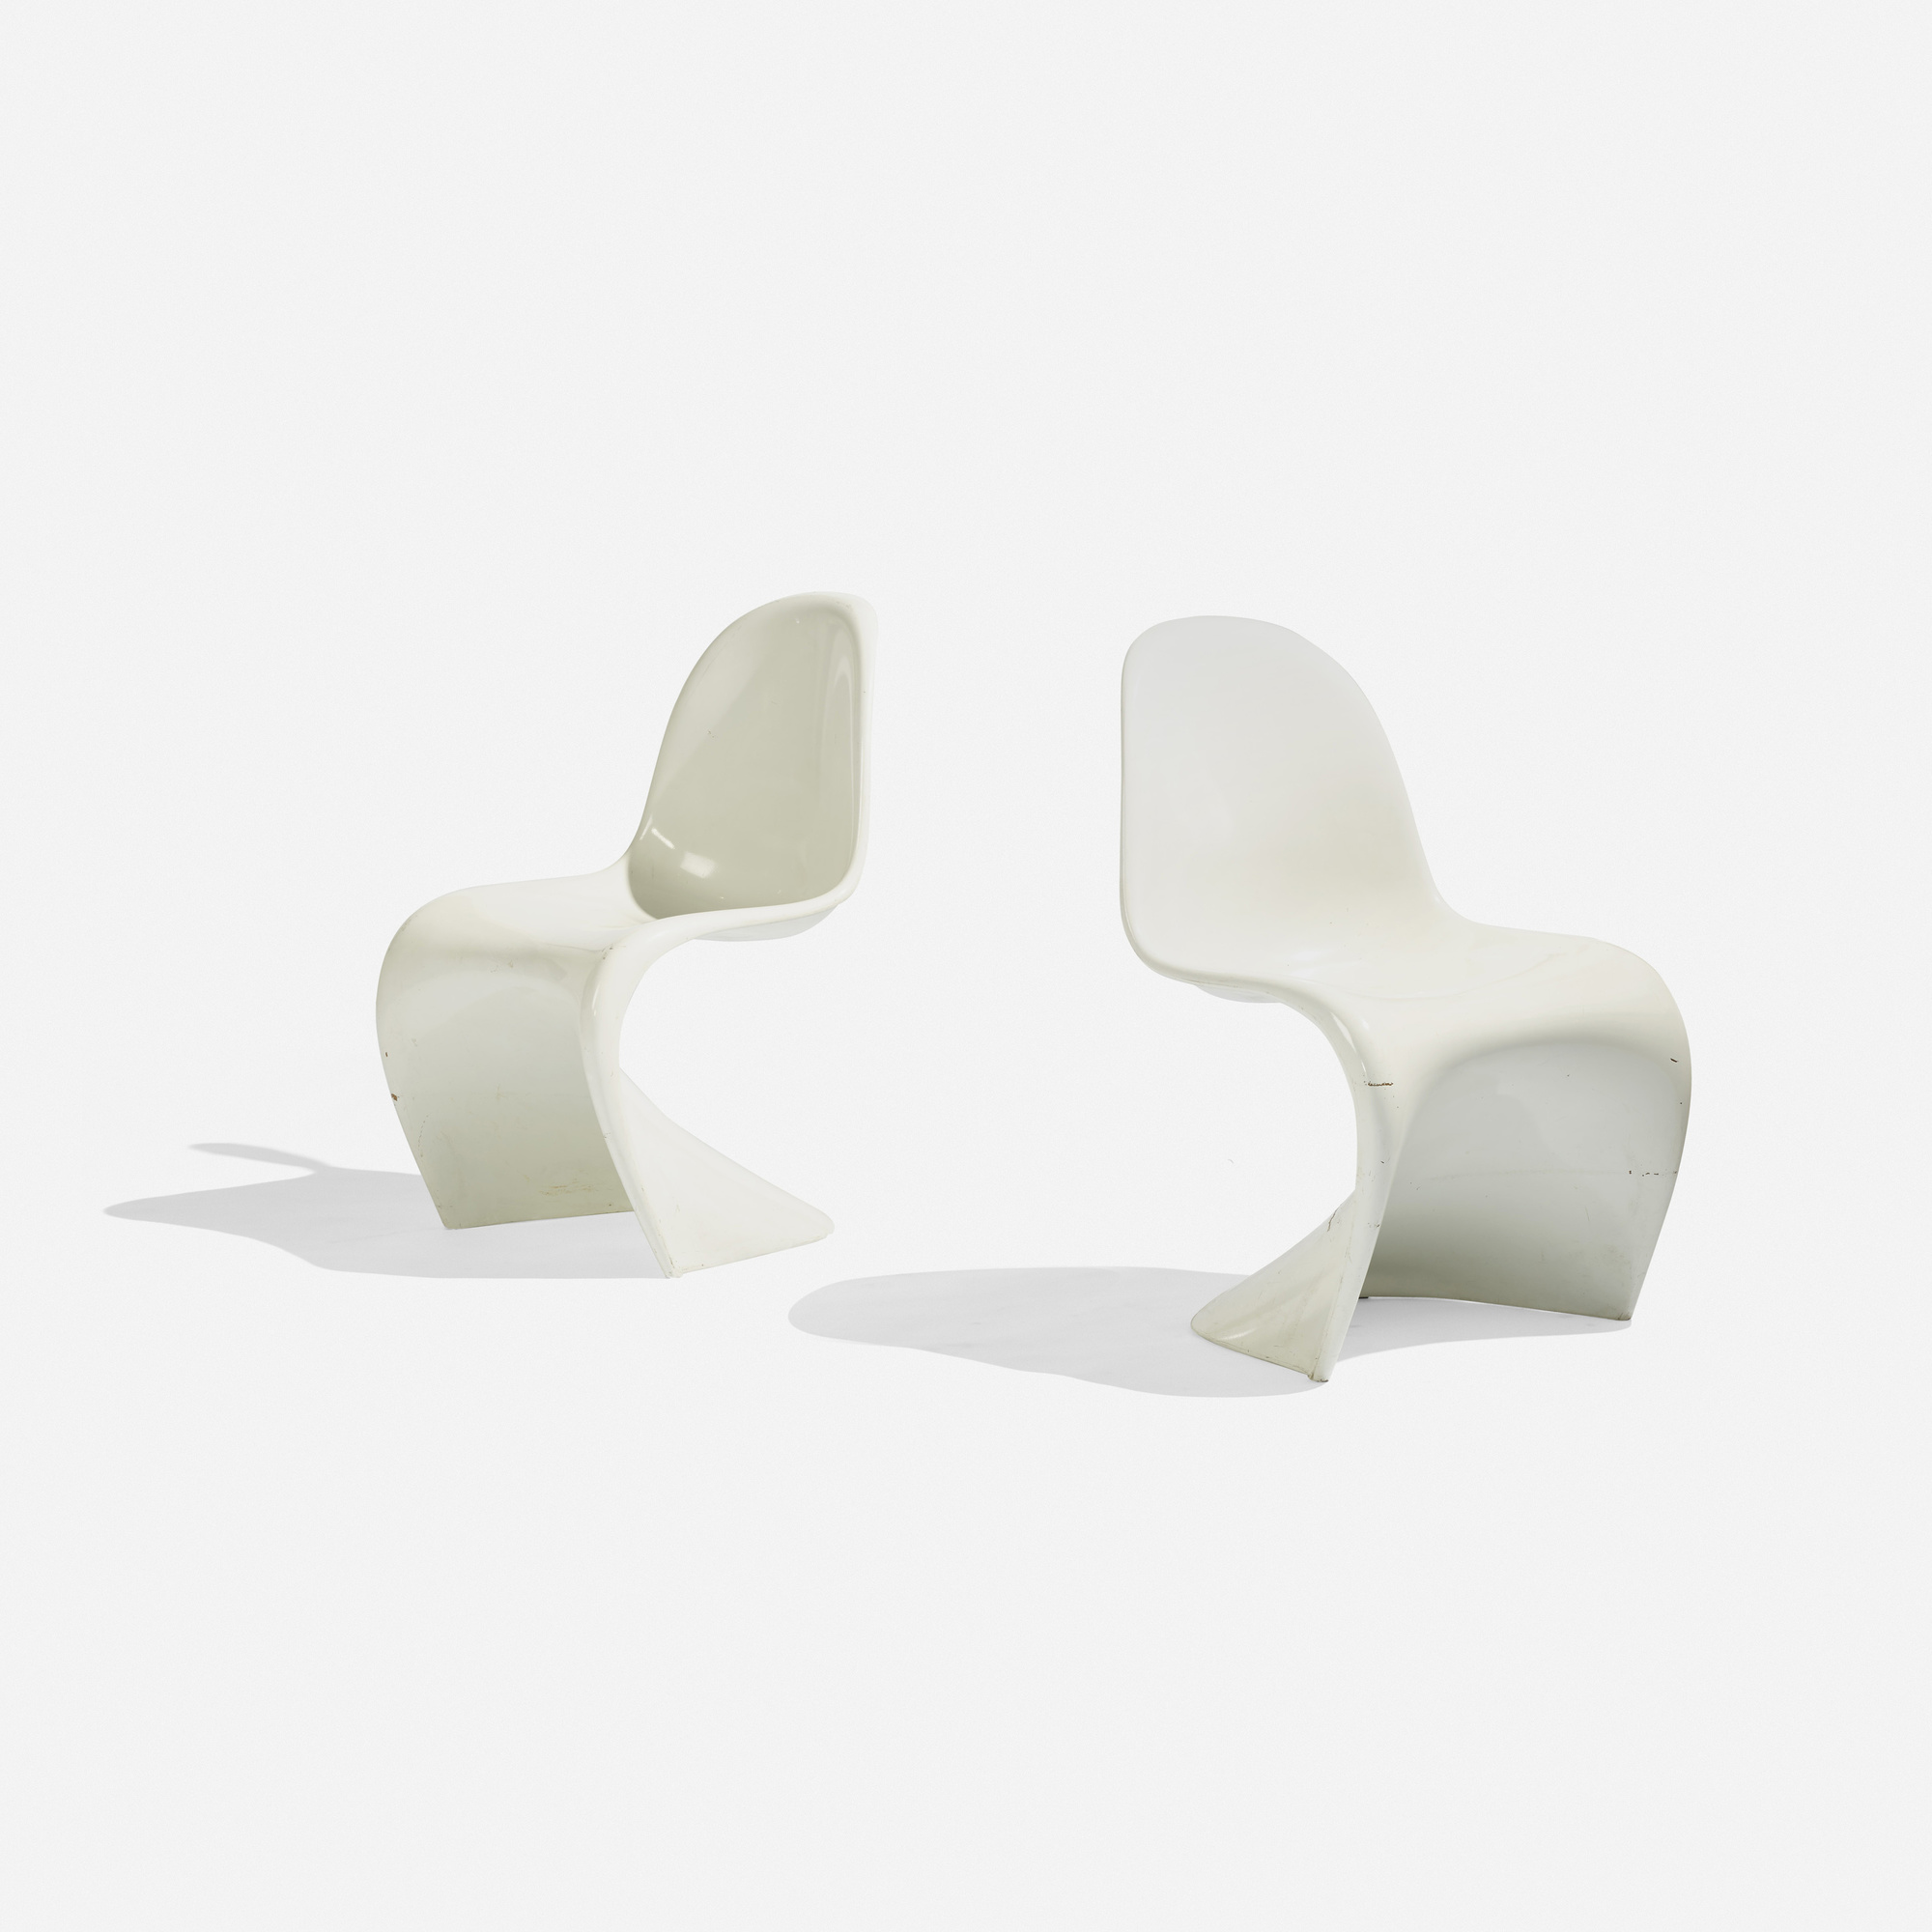 246: Verner Panton / Panton Chairs, Pair (1 Of 2)